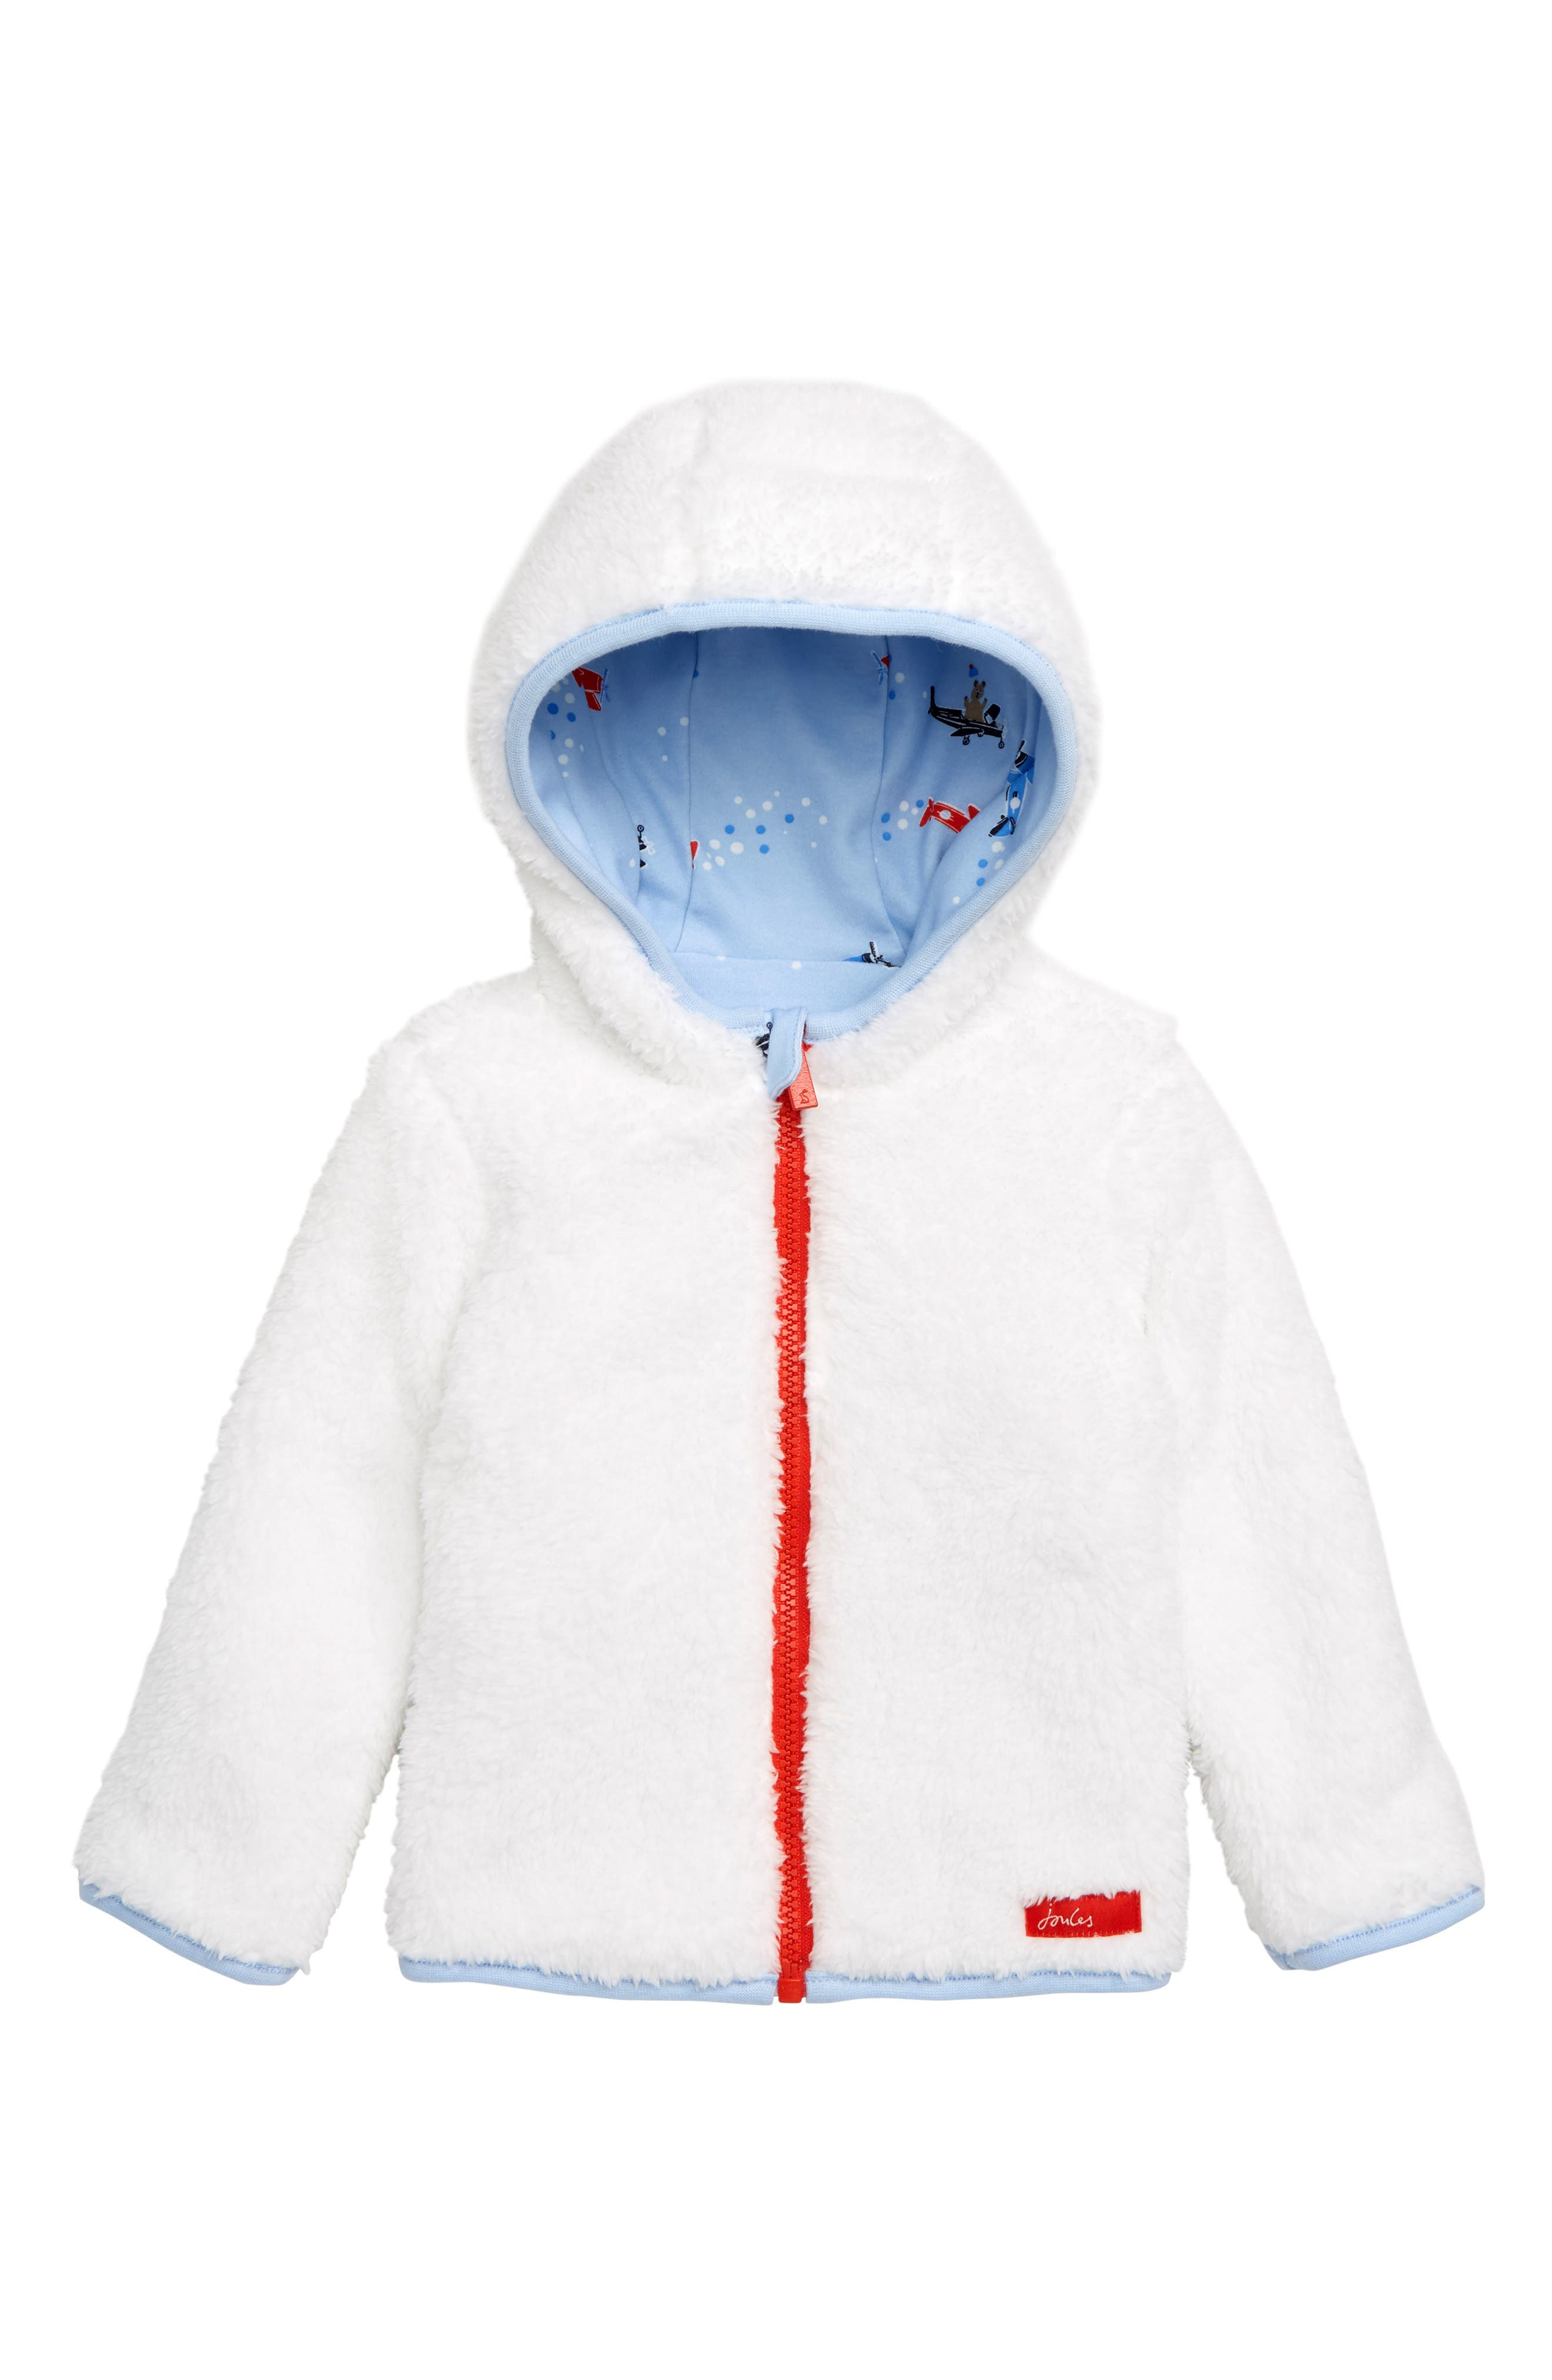 JOULES, James Reversible Fleece Jacket, Alternate thumbnail 2, color, BLPLNEBEAR